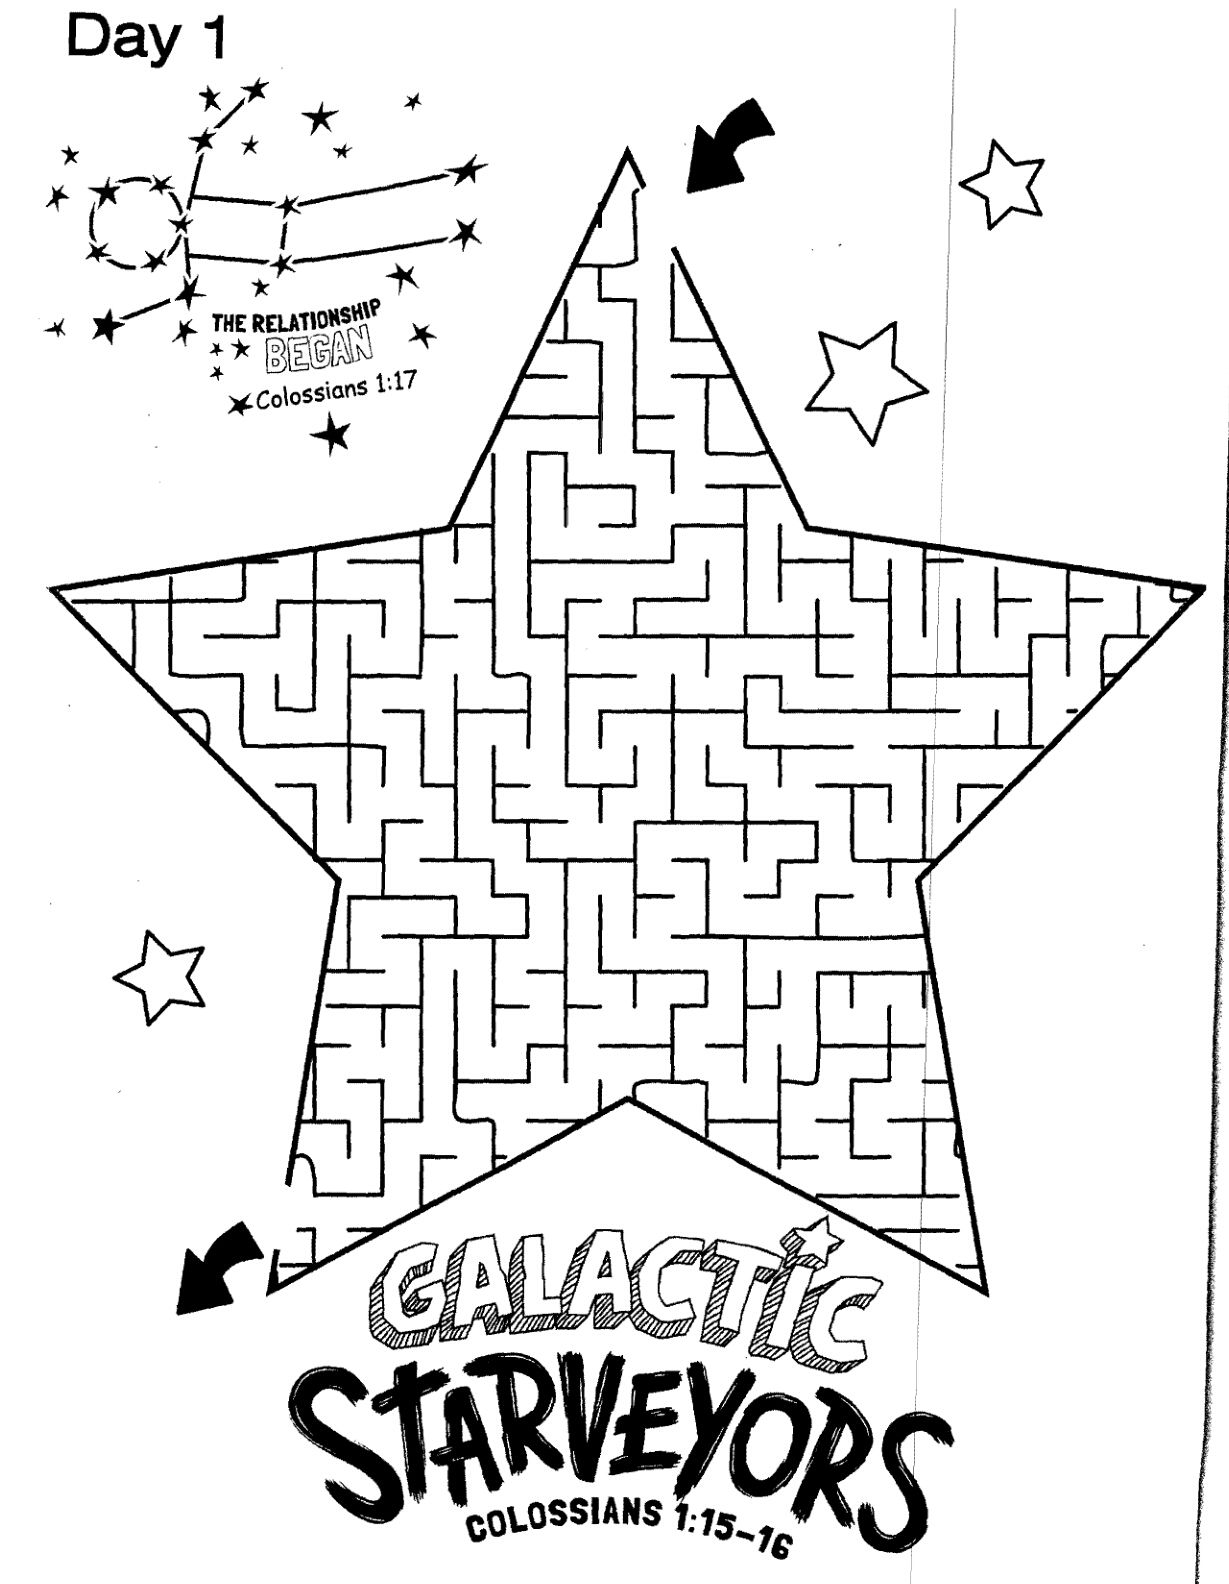 galactic starveyors coloring sheet vbs 2017 day 1 vbs 2017